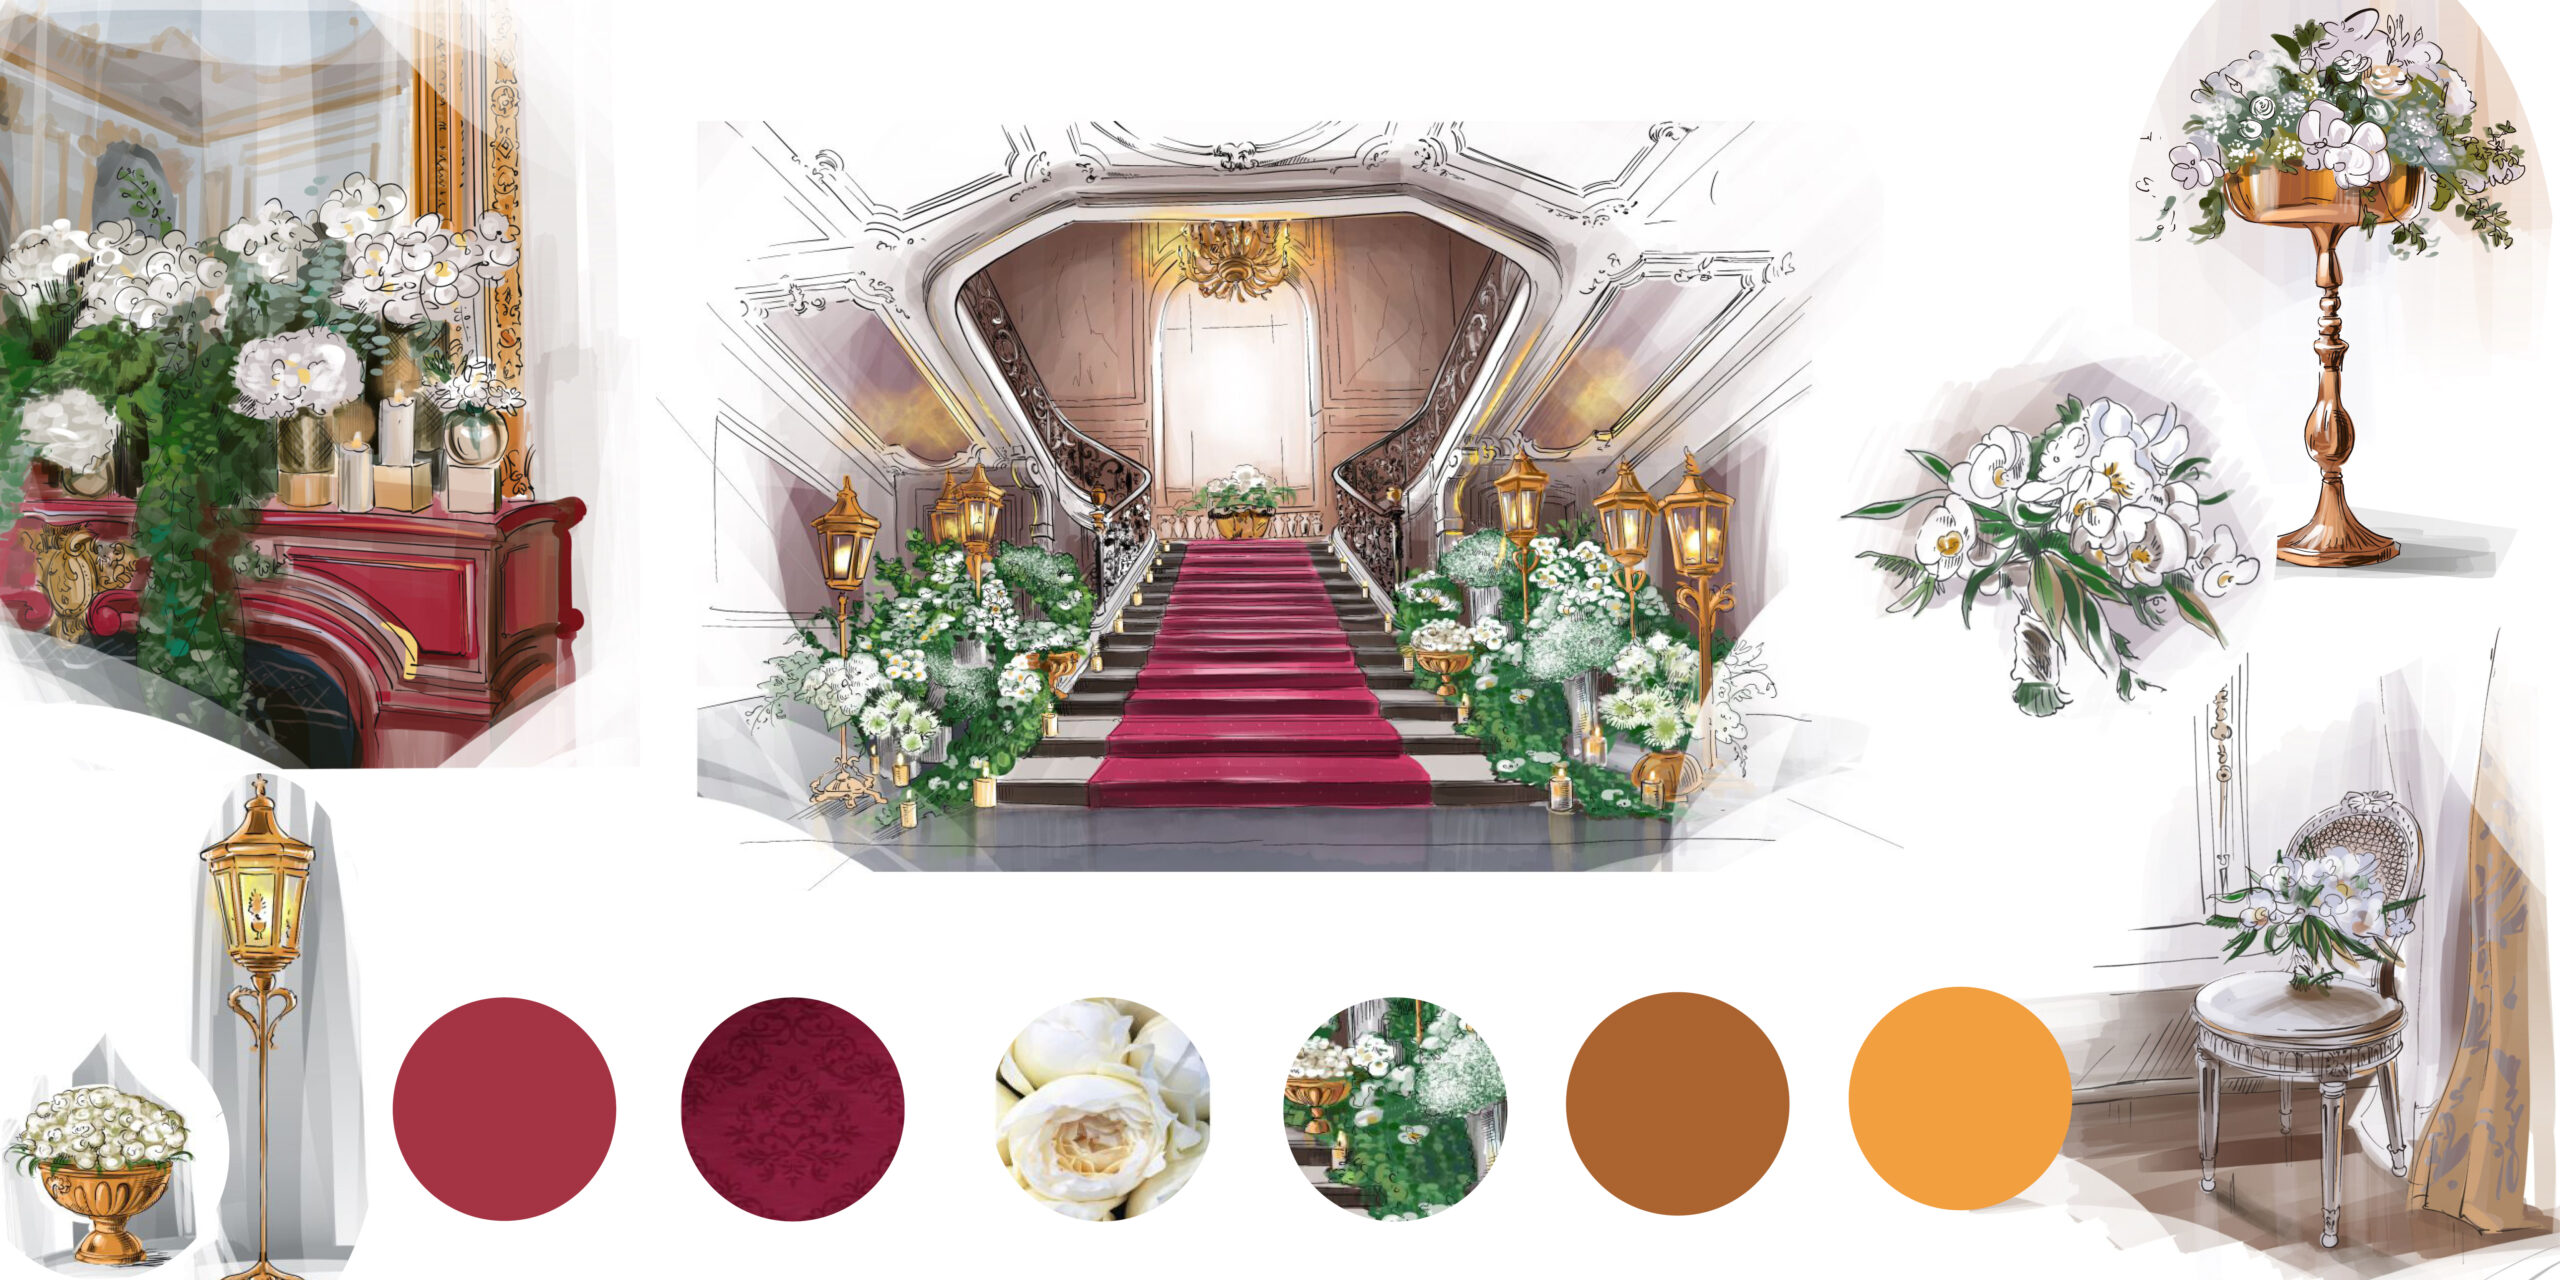 3 d plans and painting Wedding floral design